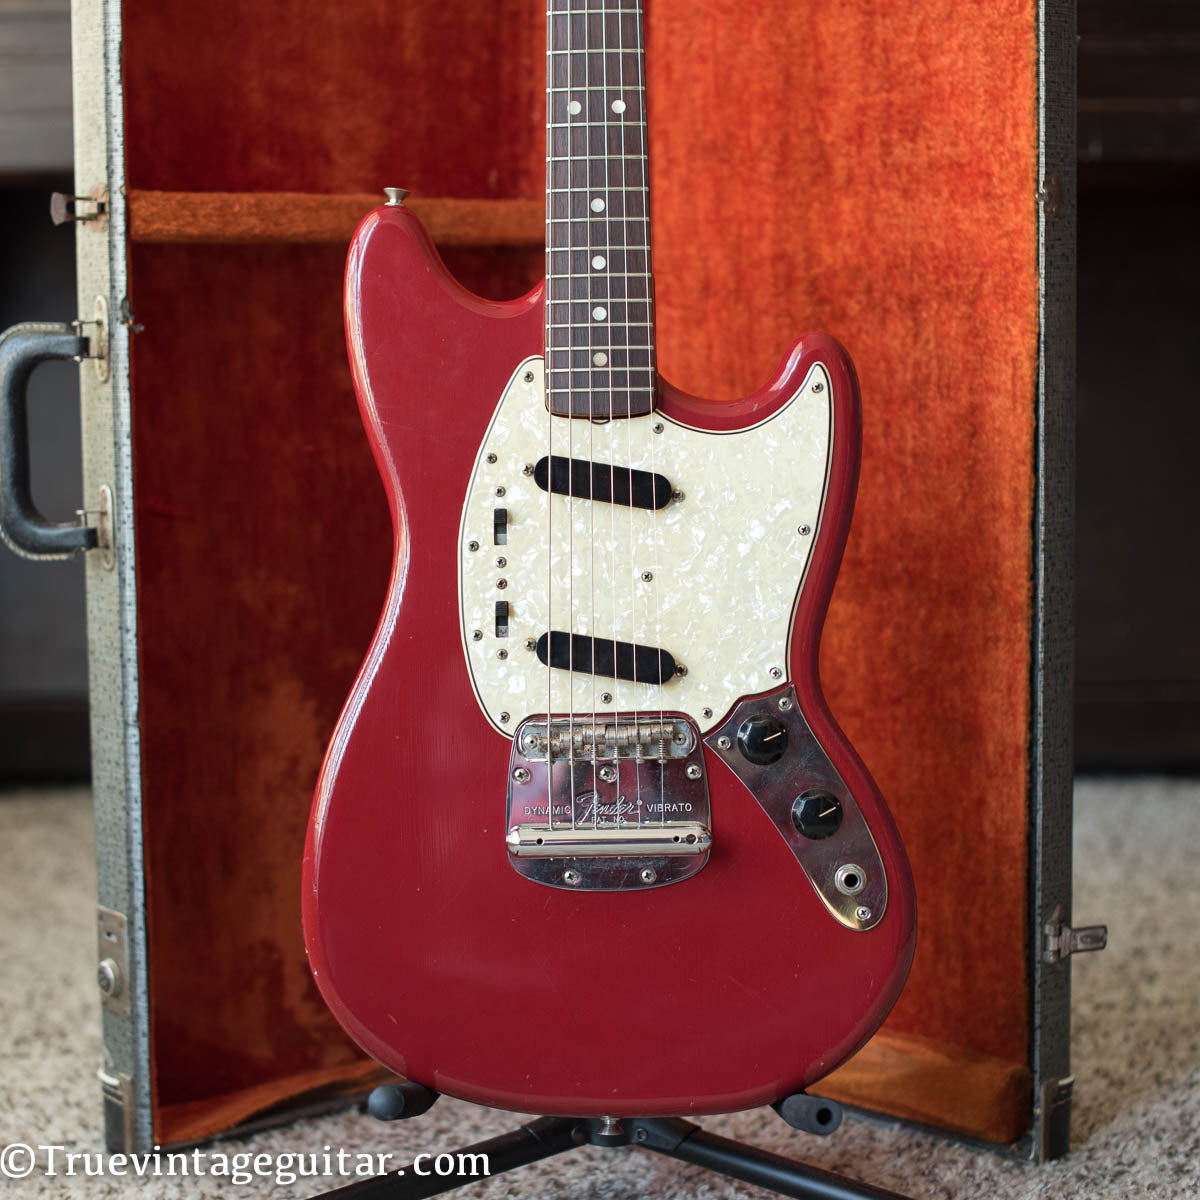 Fender Mustang guitar Red vintage 1960s